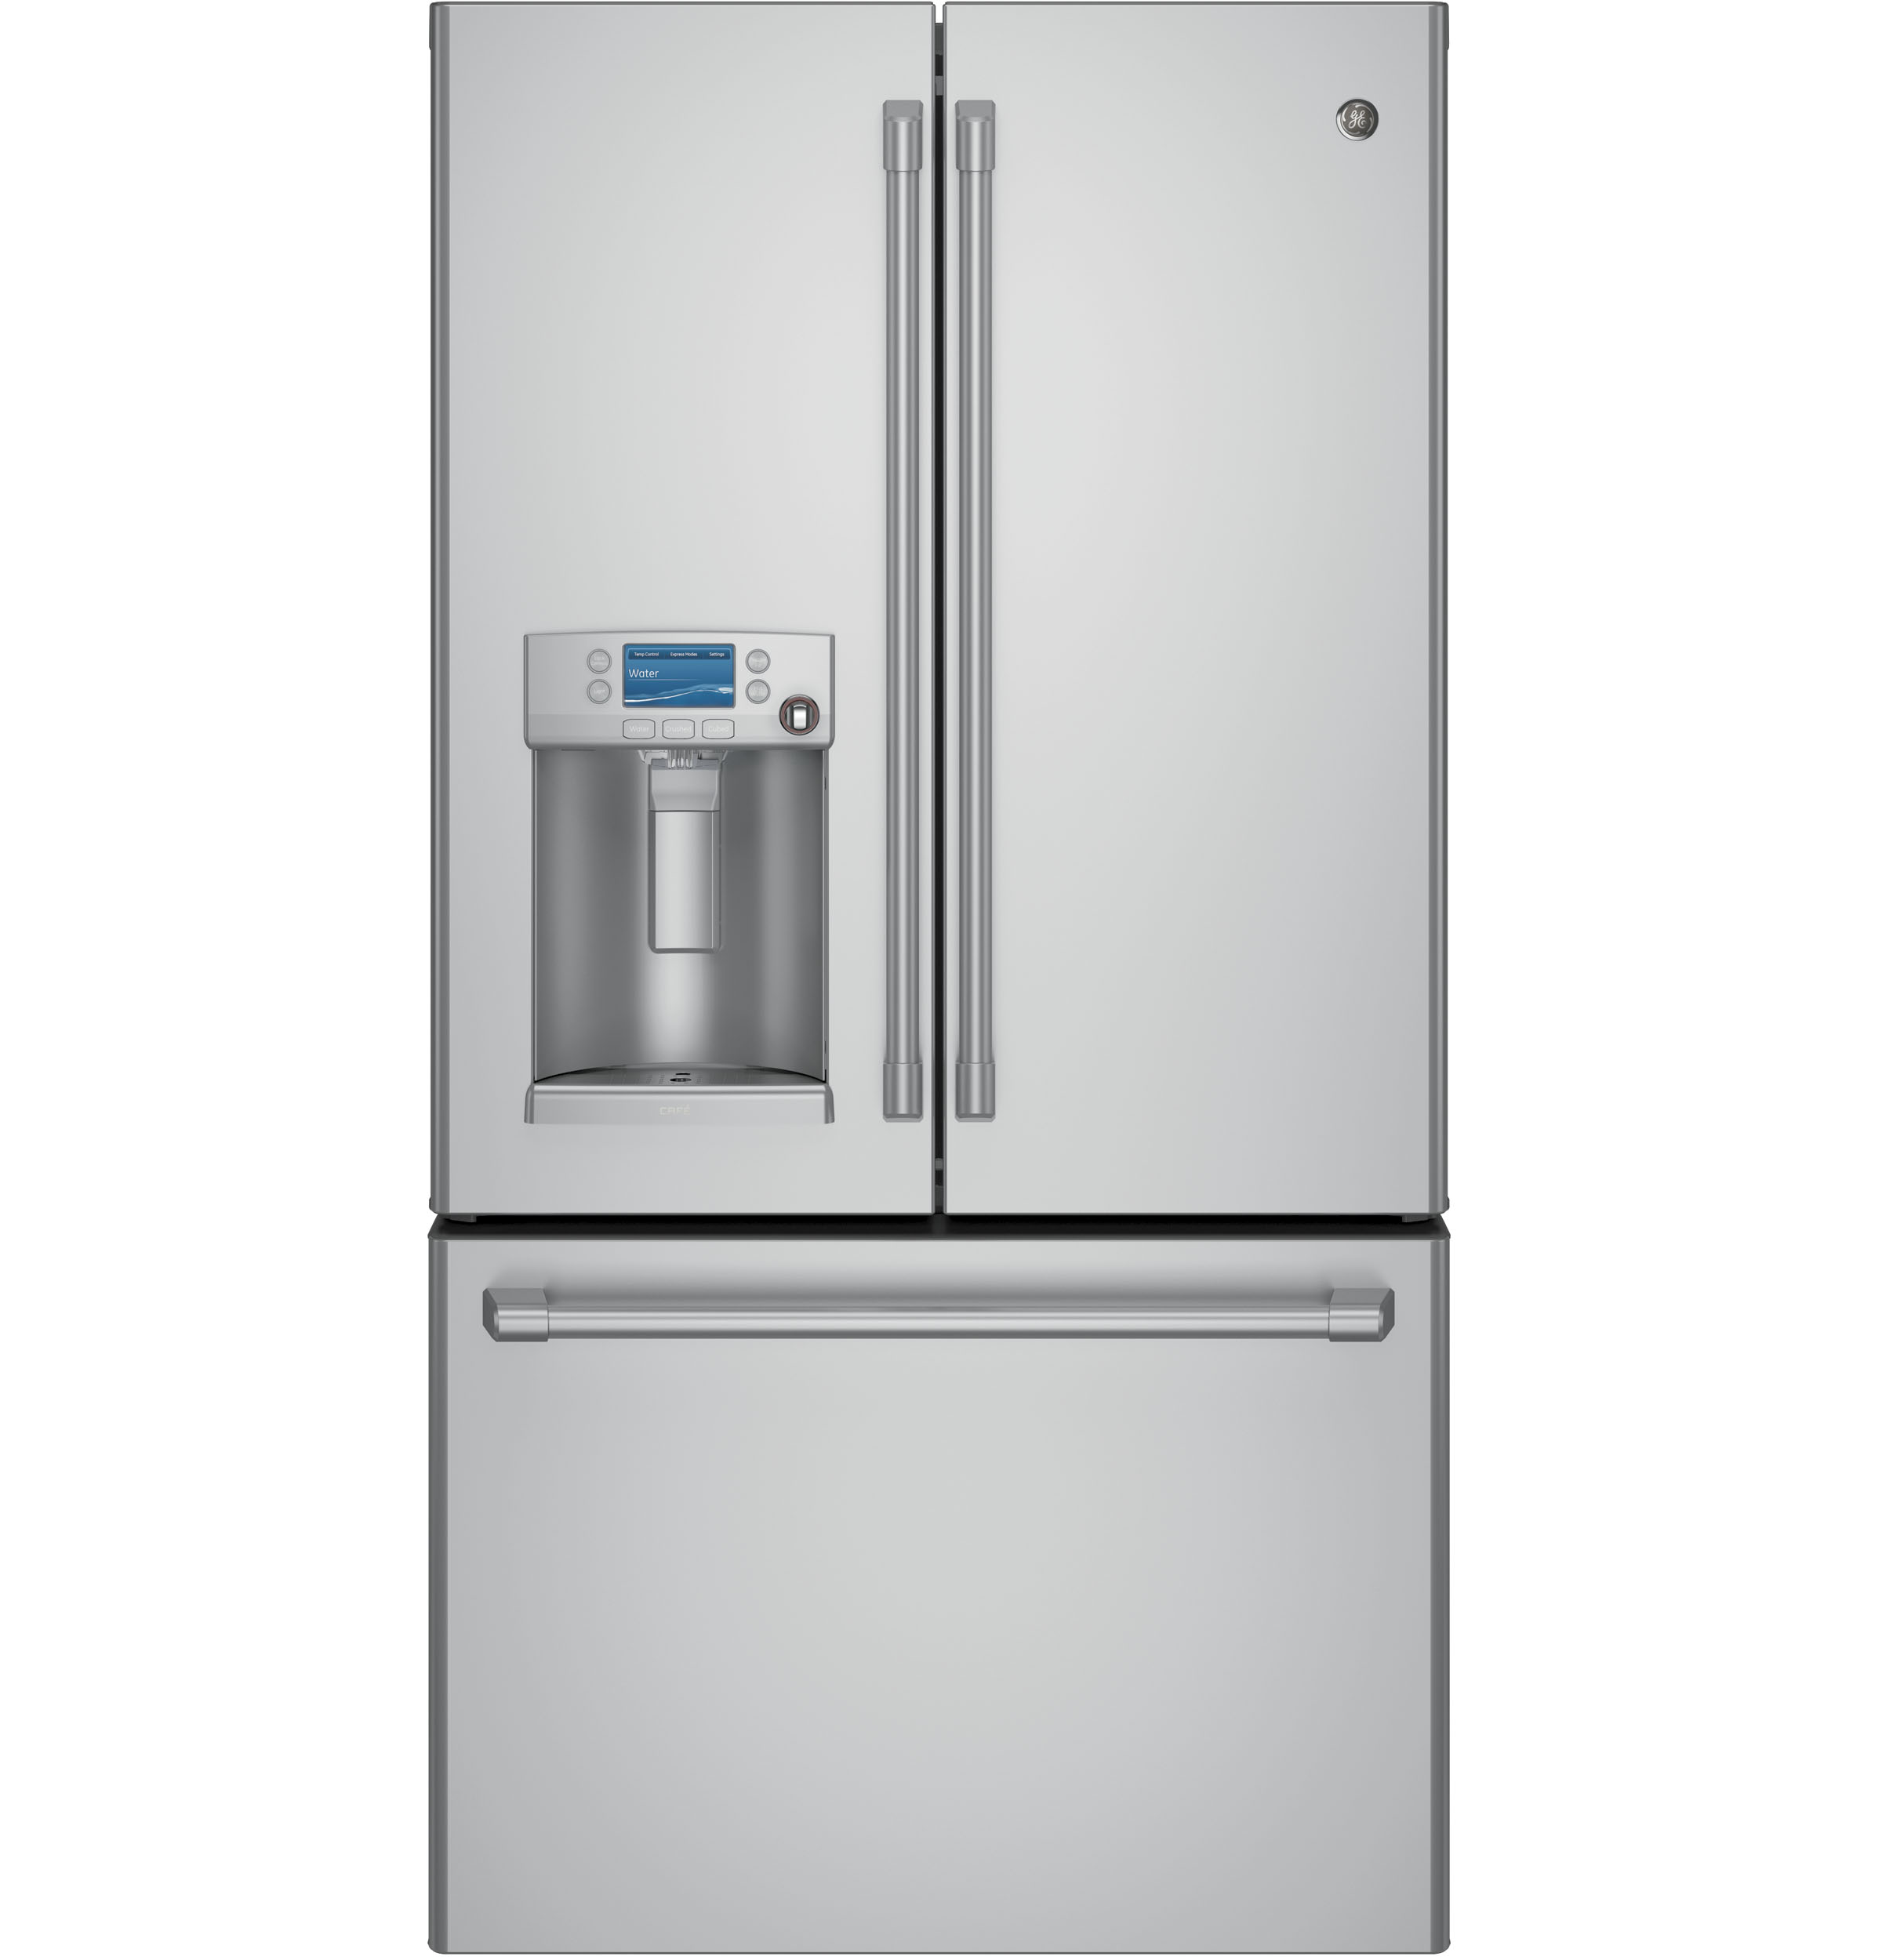 GE Cafe GE Café™ Series ENERGY STAR® 22.2 Cu. Ft. Counter-Depth French-Door Refrigerator with Hot Water Dispenser